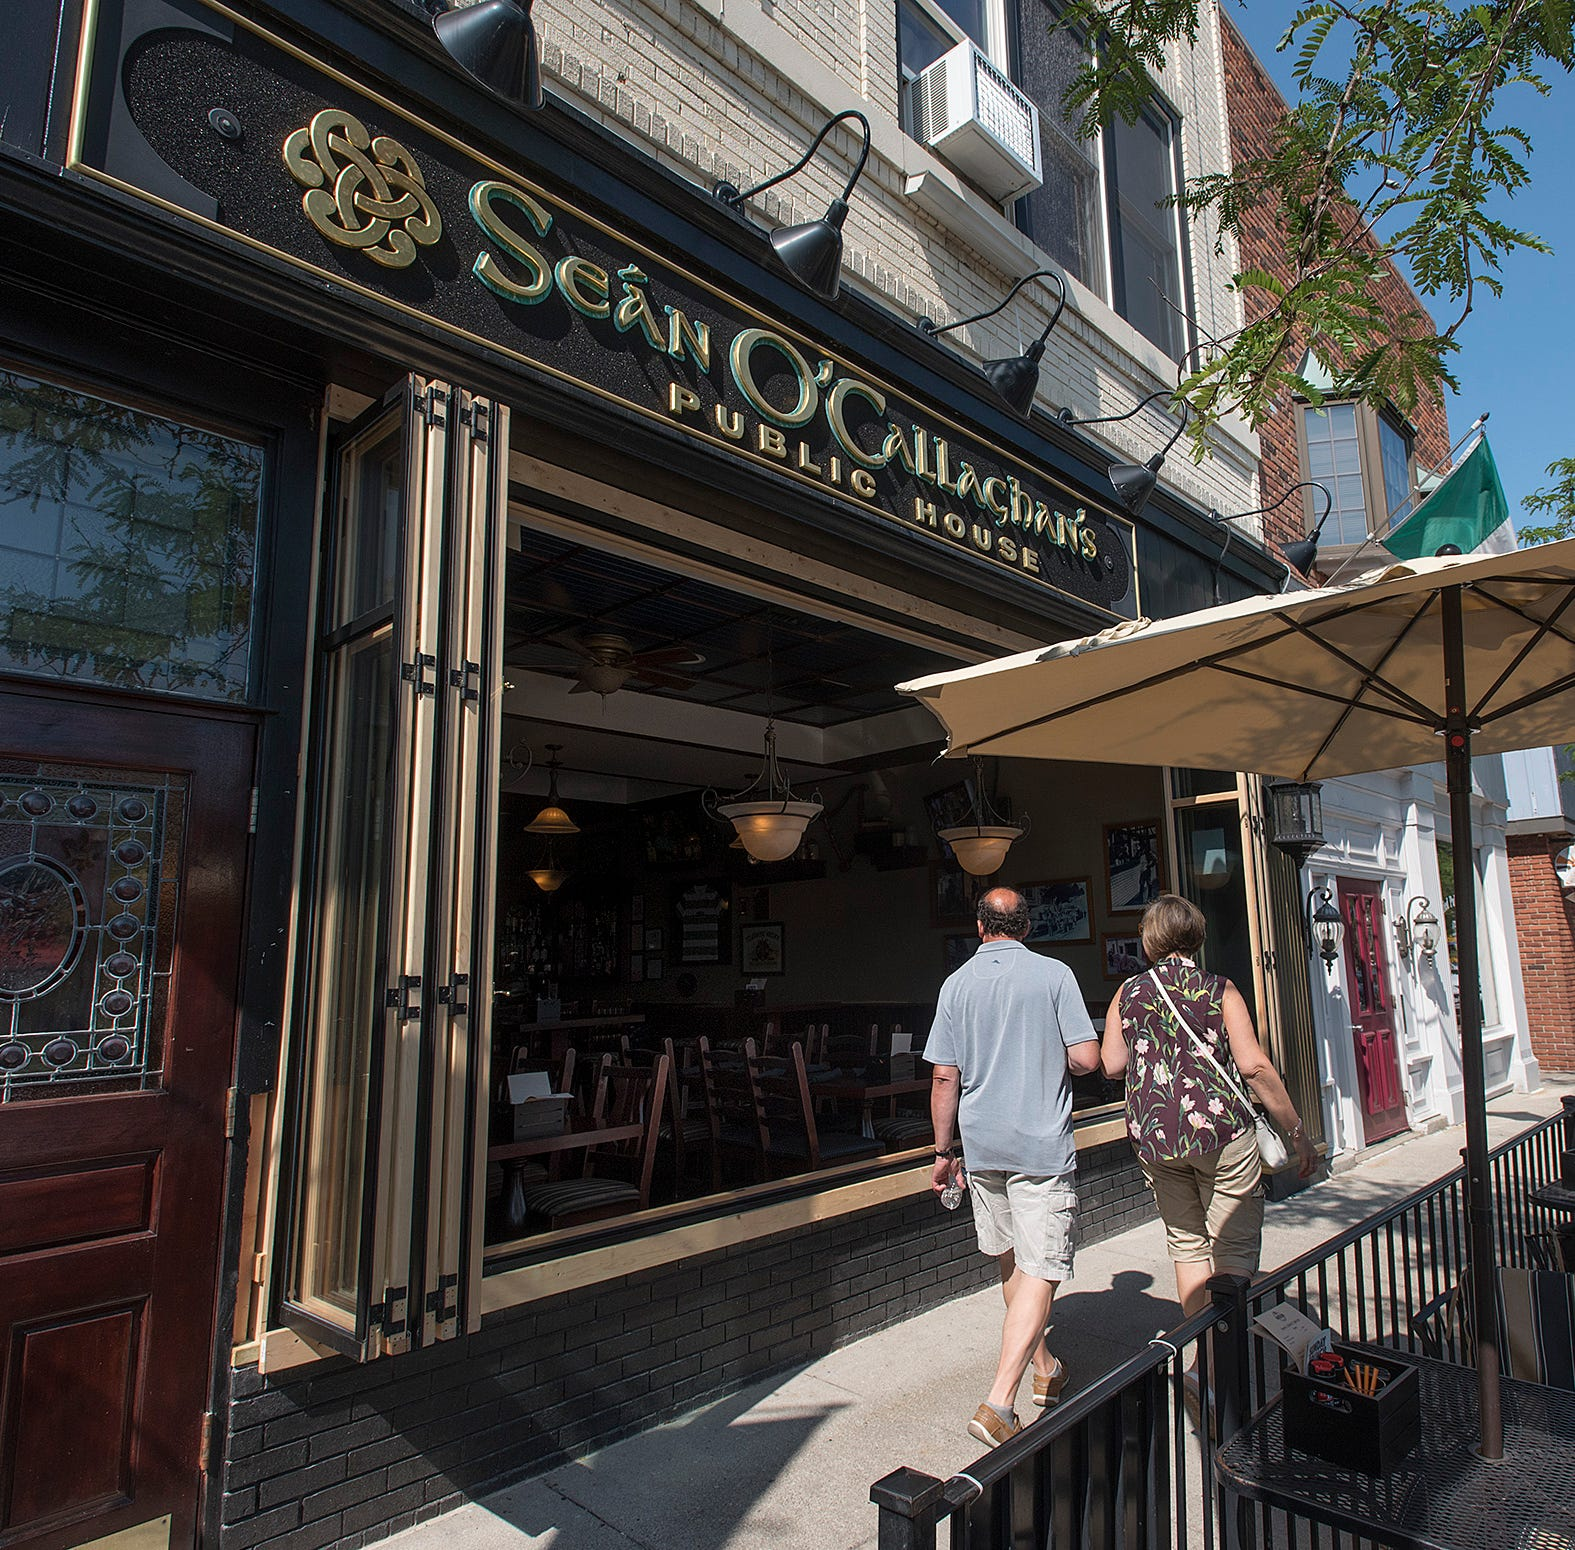 Sean O'Callaghan's Irish pub opens window to future in Plymouth